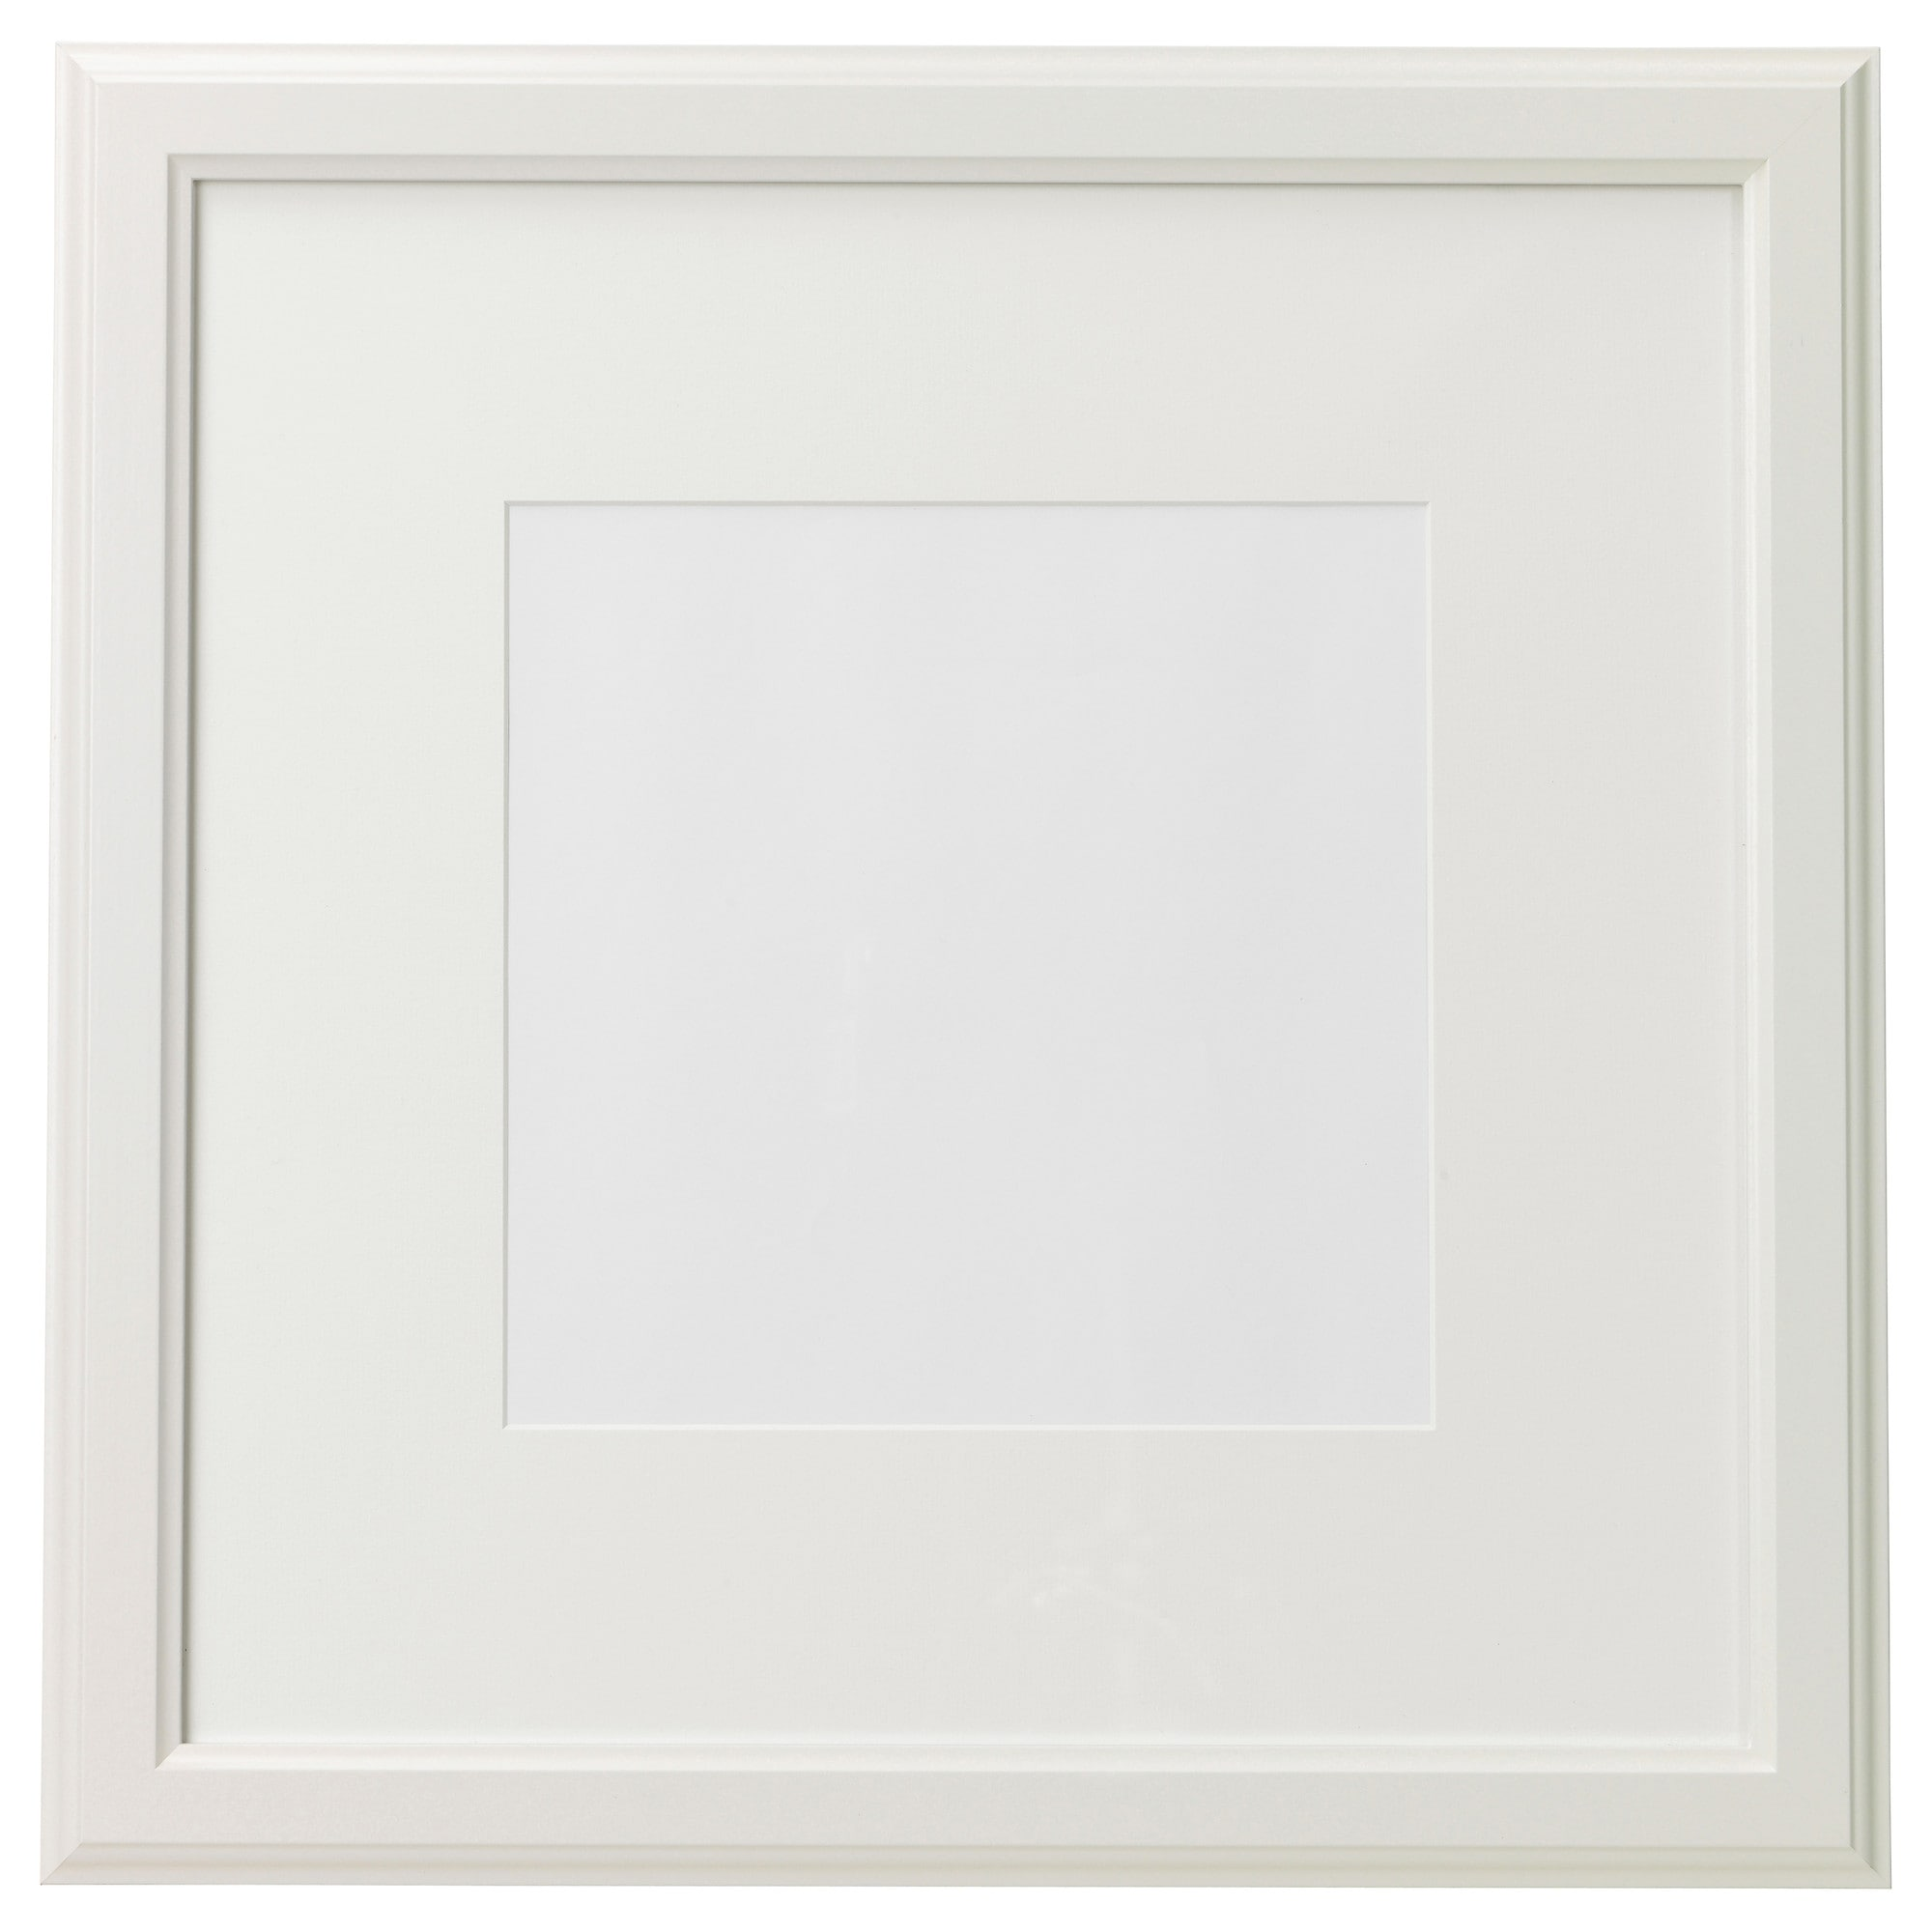 virserum frame white picture without mat width 19 picture without mat